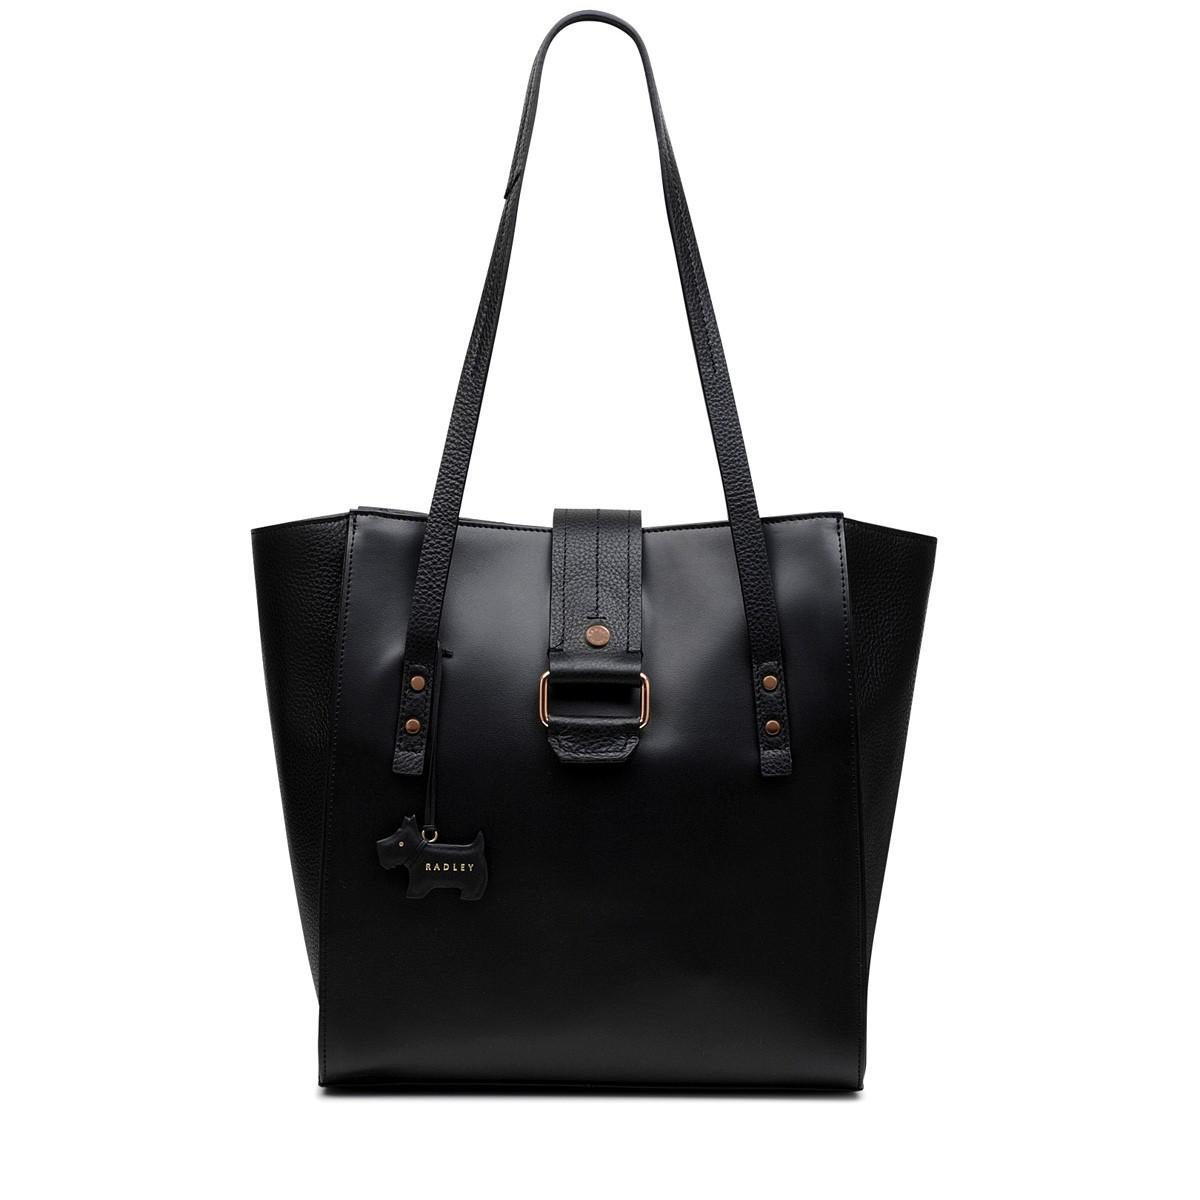 Radley Ellis Mews Leather Large Tote Bag in Black